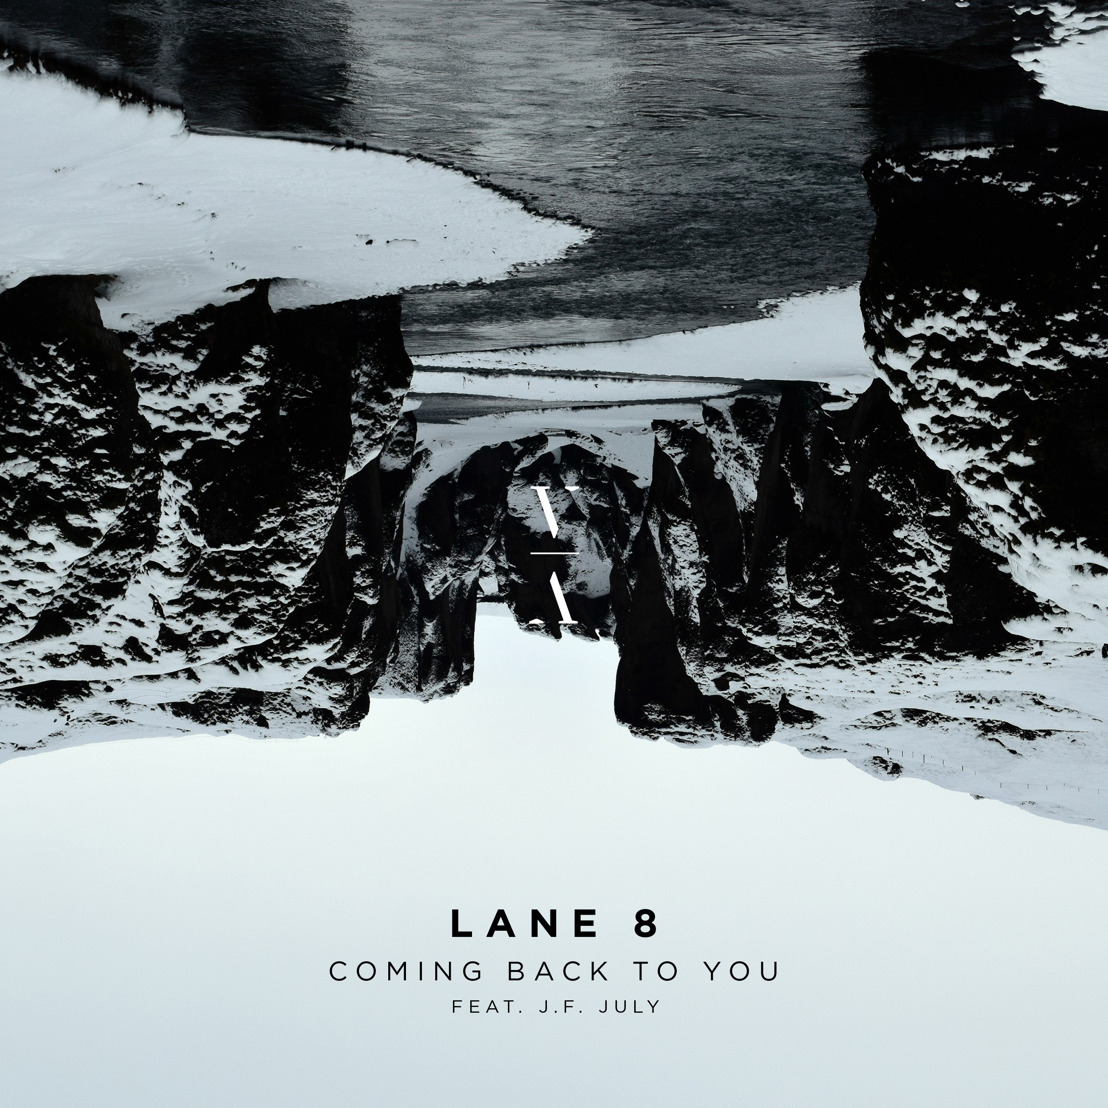 Lane 8 Reveals Latest Single 'Coming Back To You' feat. J.F. July Ahead Of 'Little By Little' Album